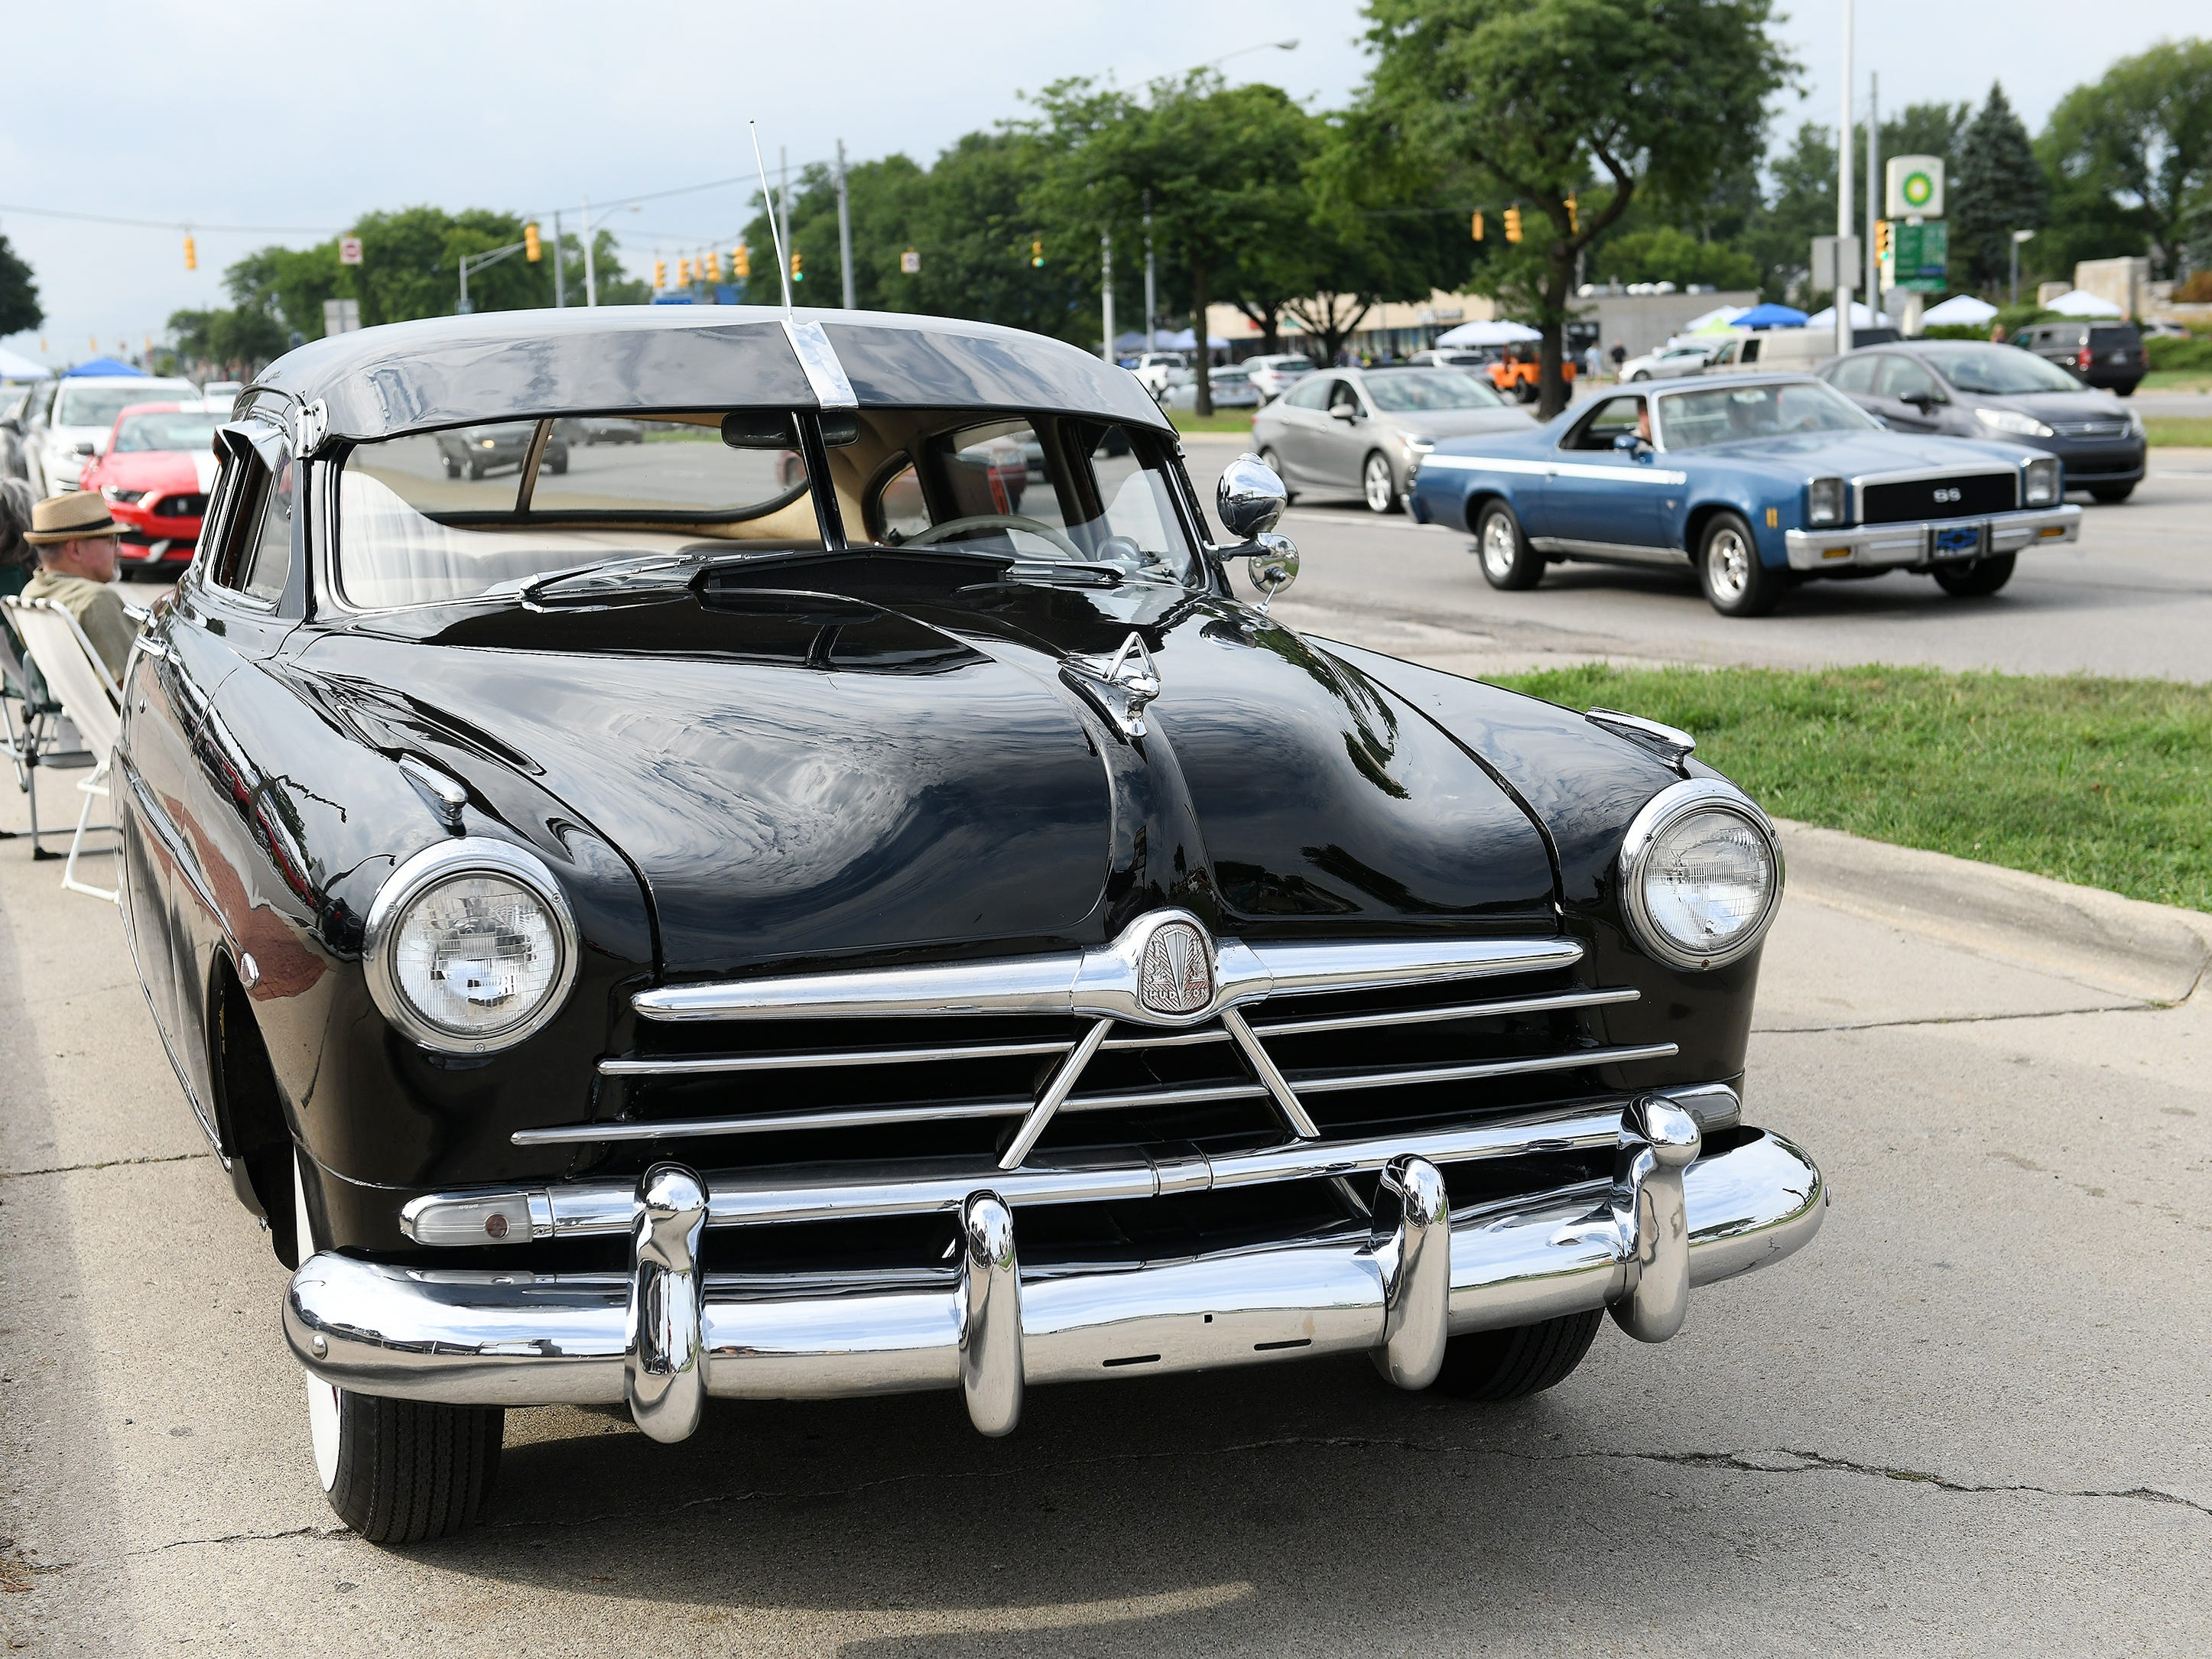 A 1950 Hudson Super Six belonging to Heidi and Duane Sabella of New Baltimore sits along Woodward.